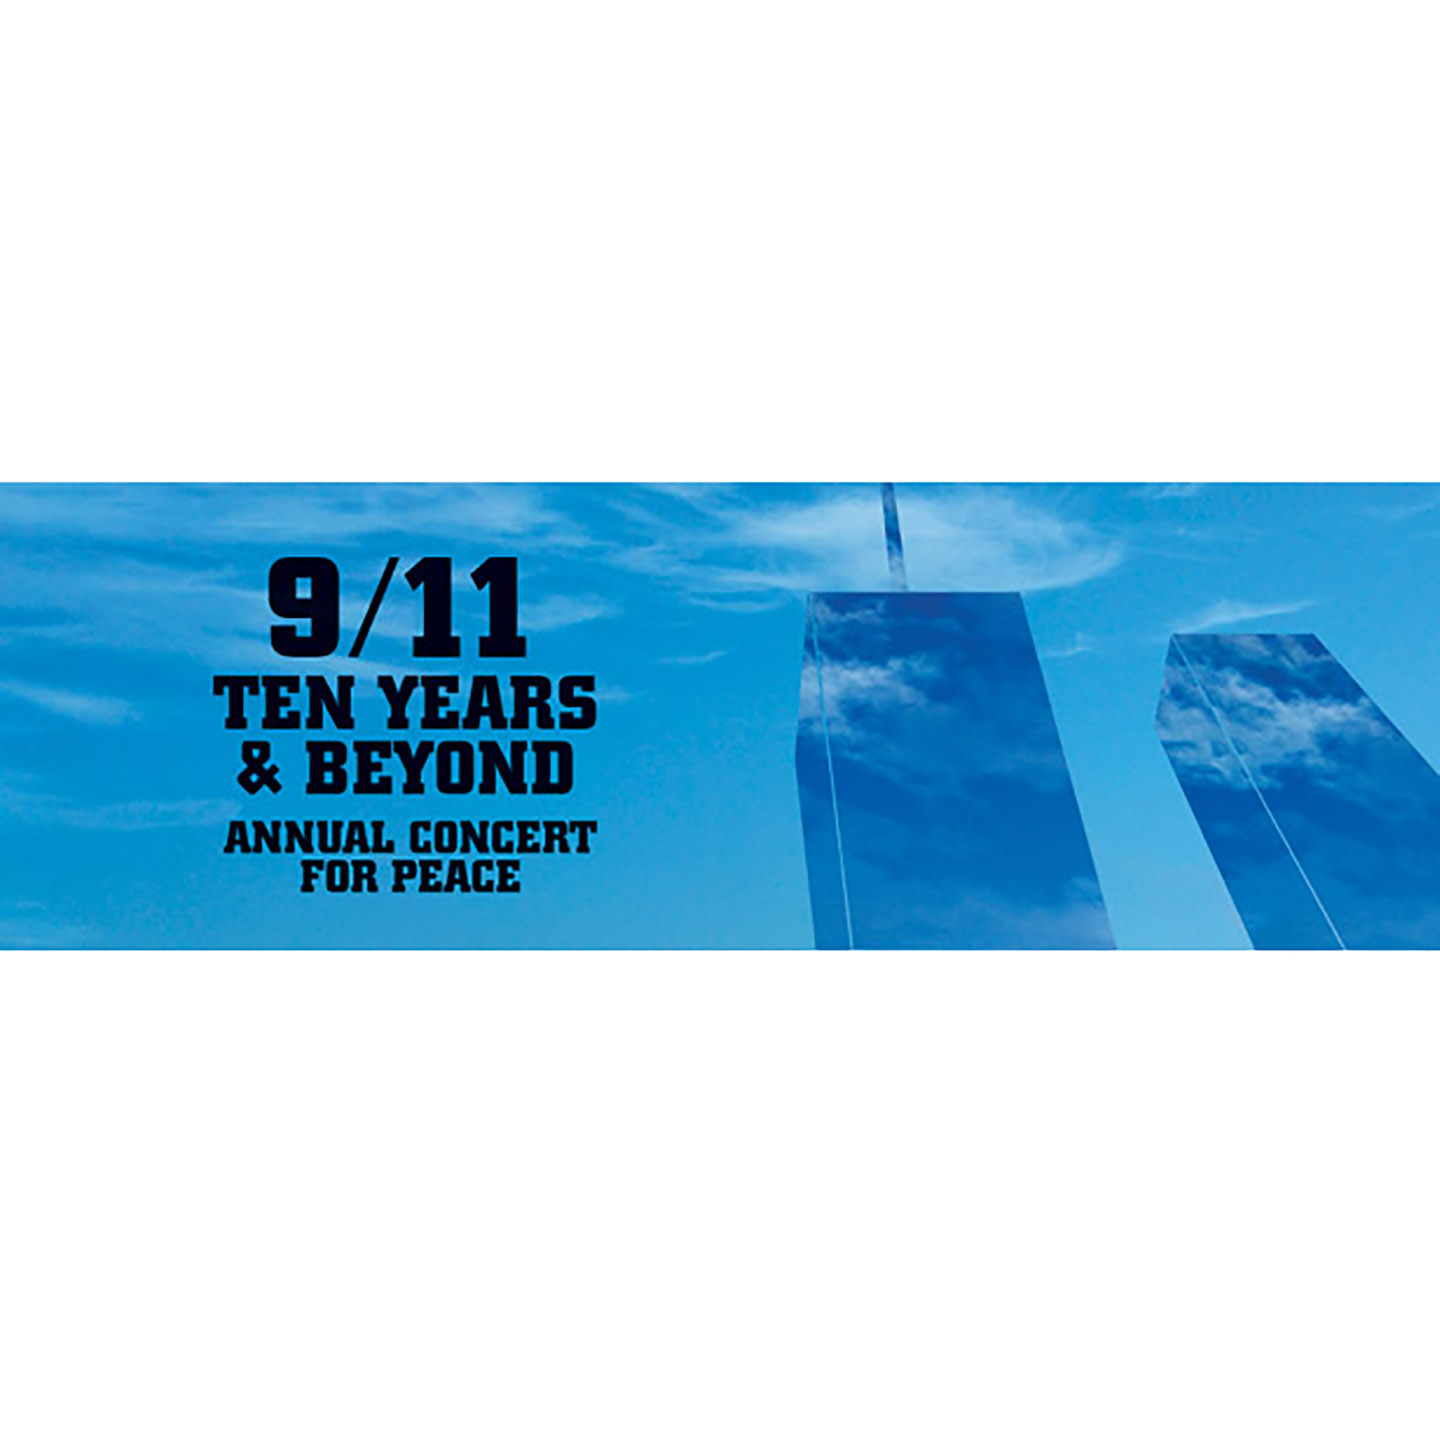 9/11: 10 Years & Beyond - Annual Concert for Peace